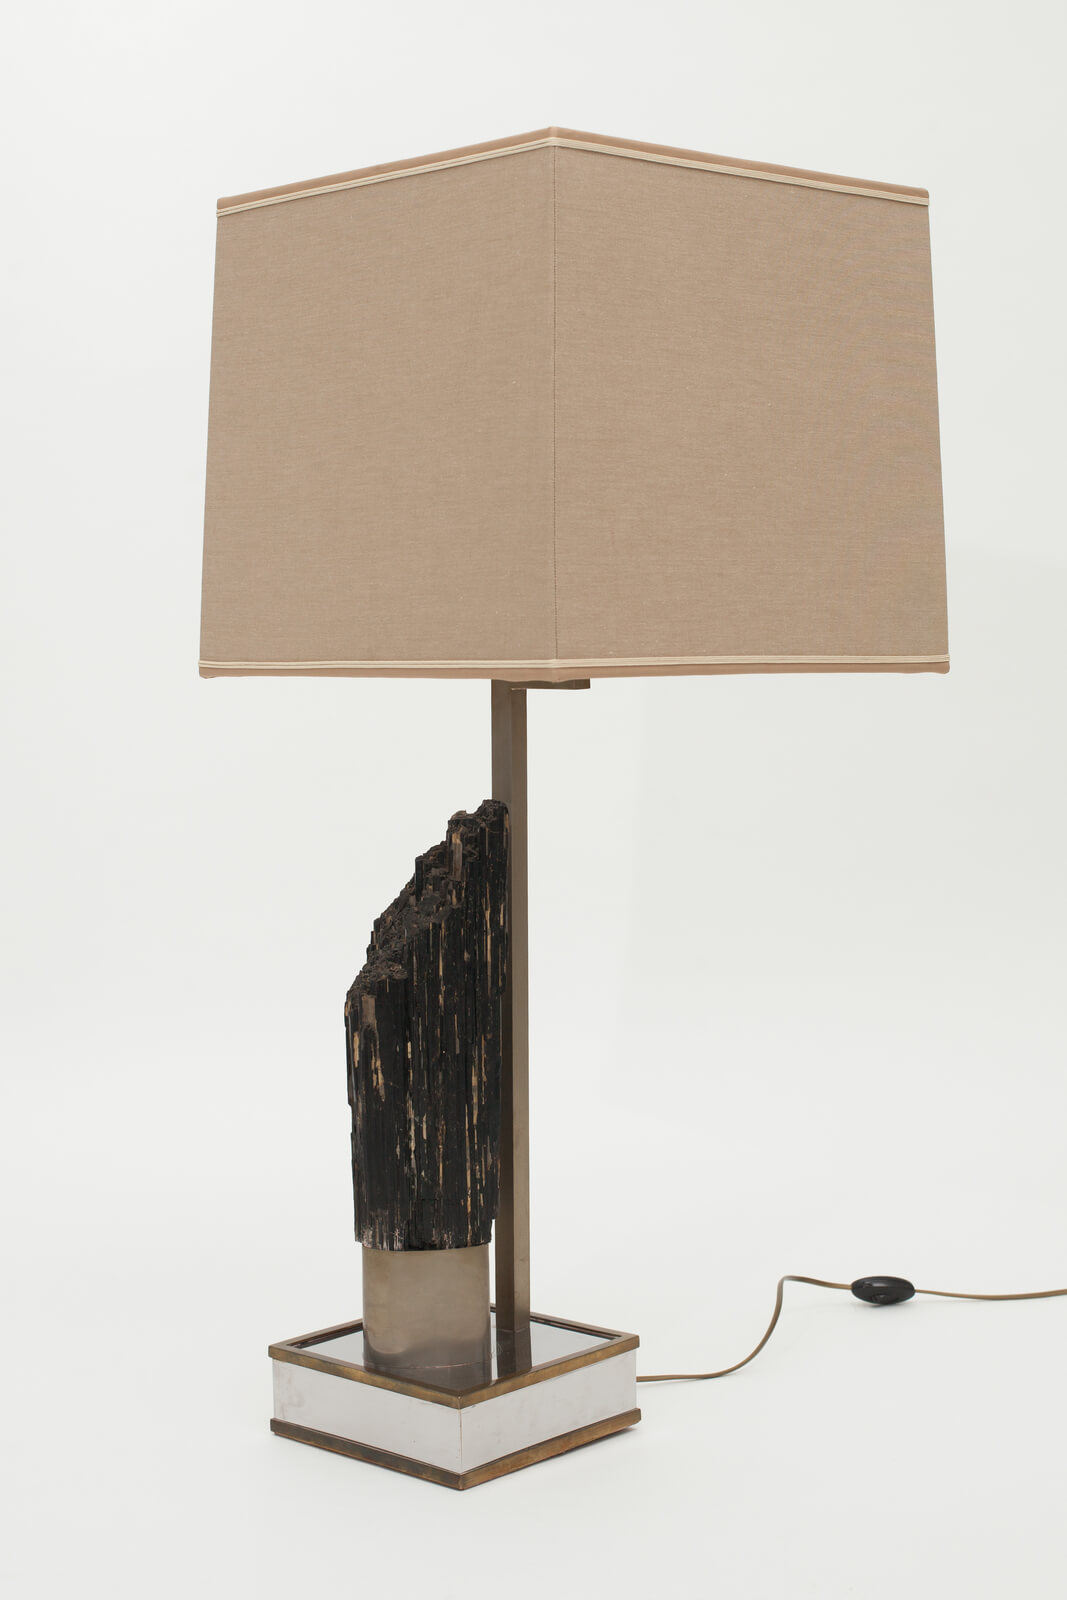 Table lamp by Romeo Rega for sale